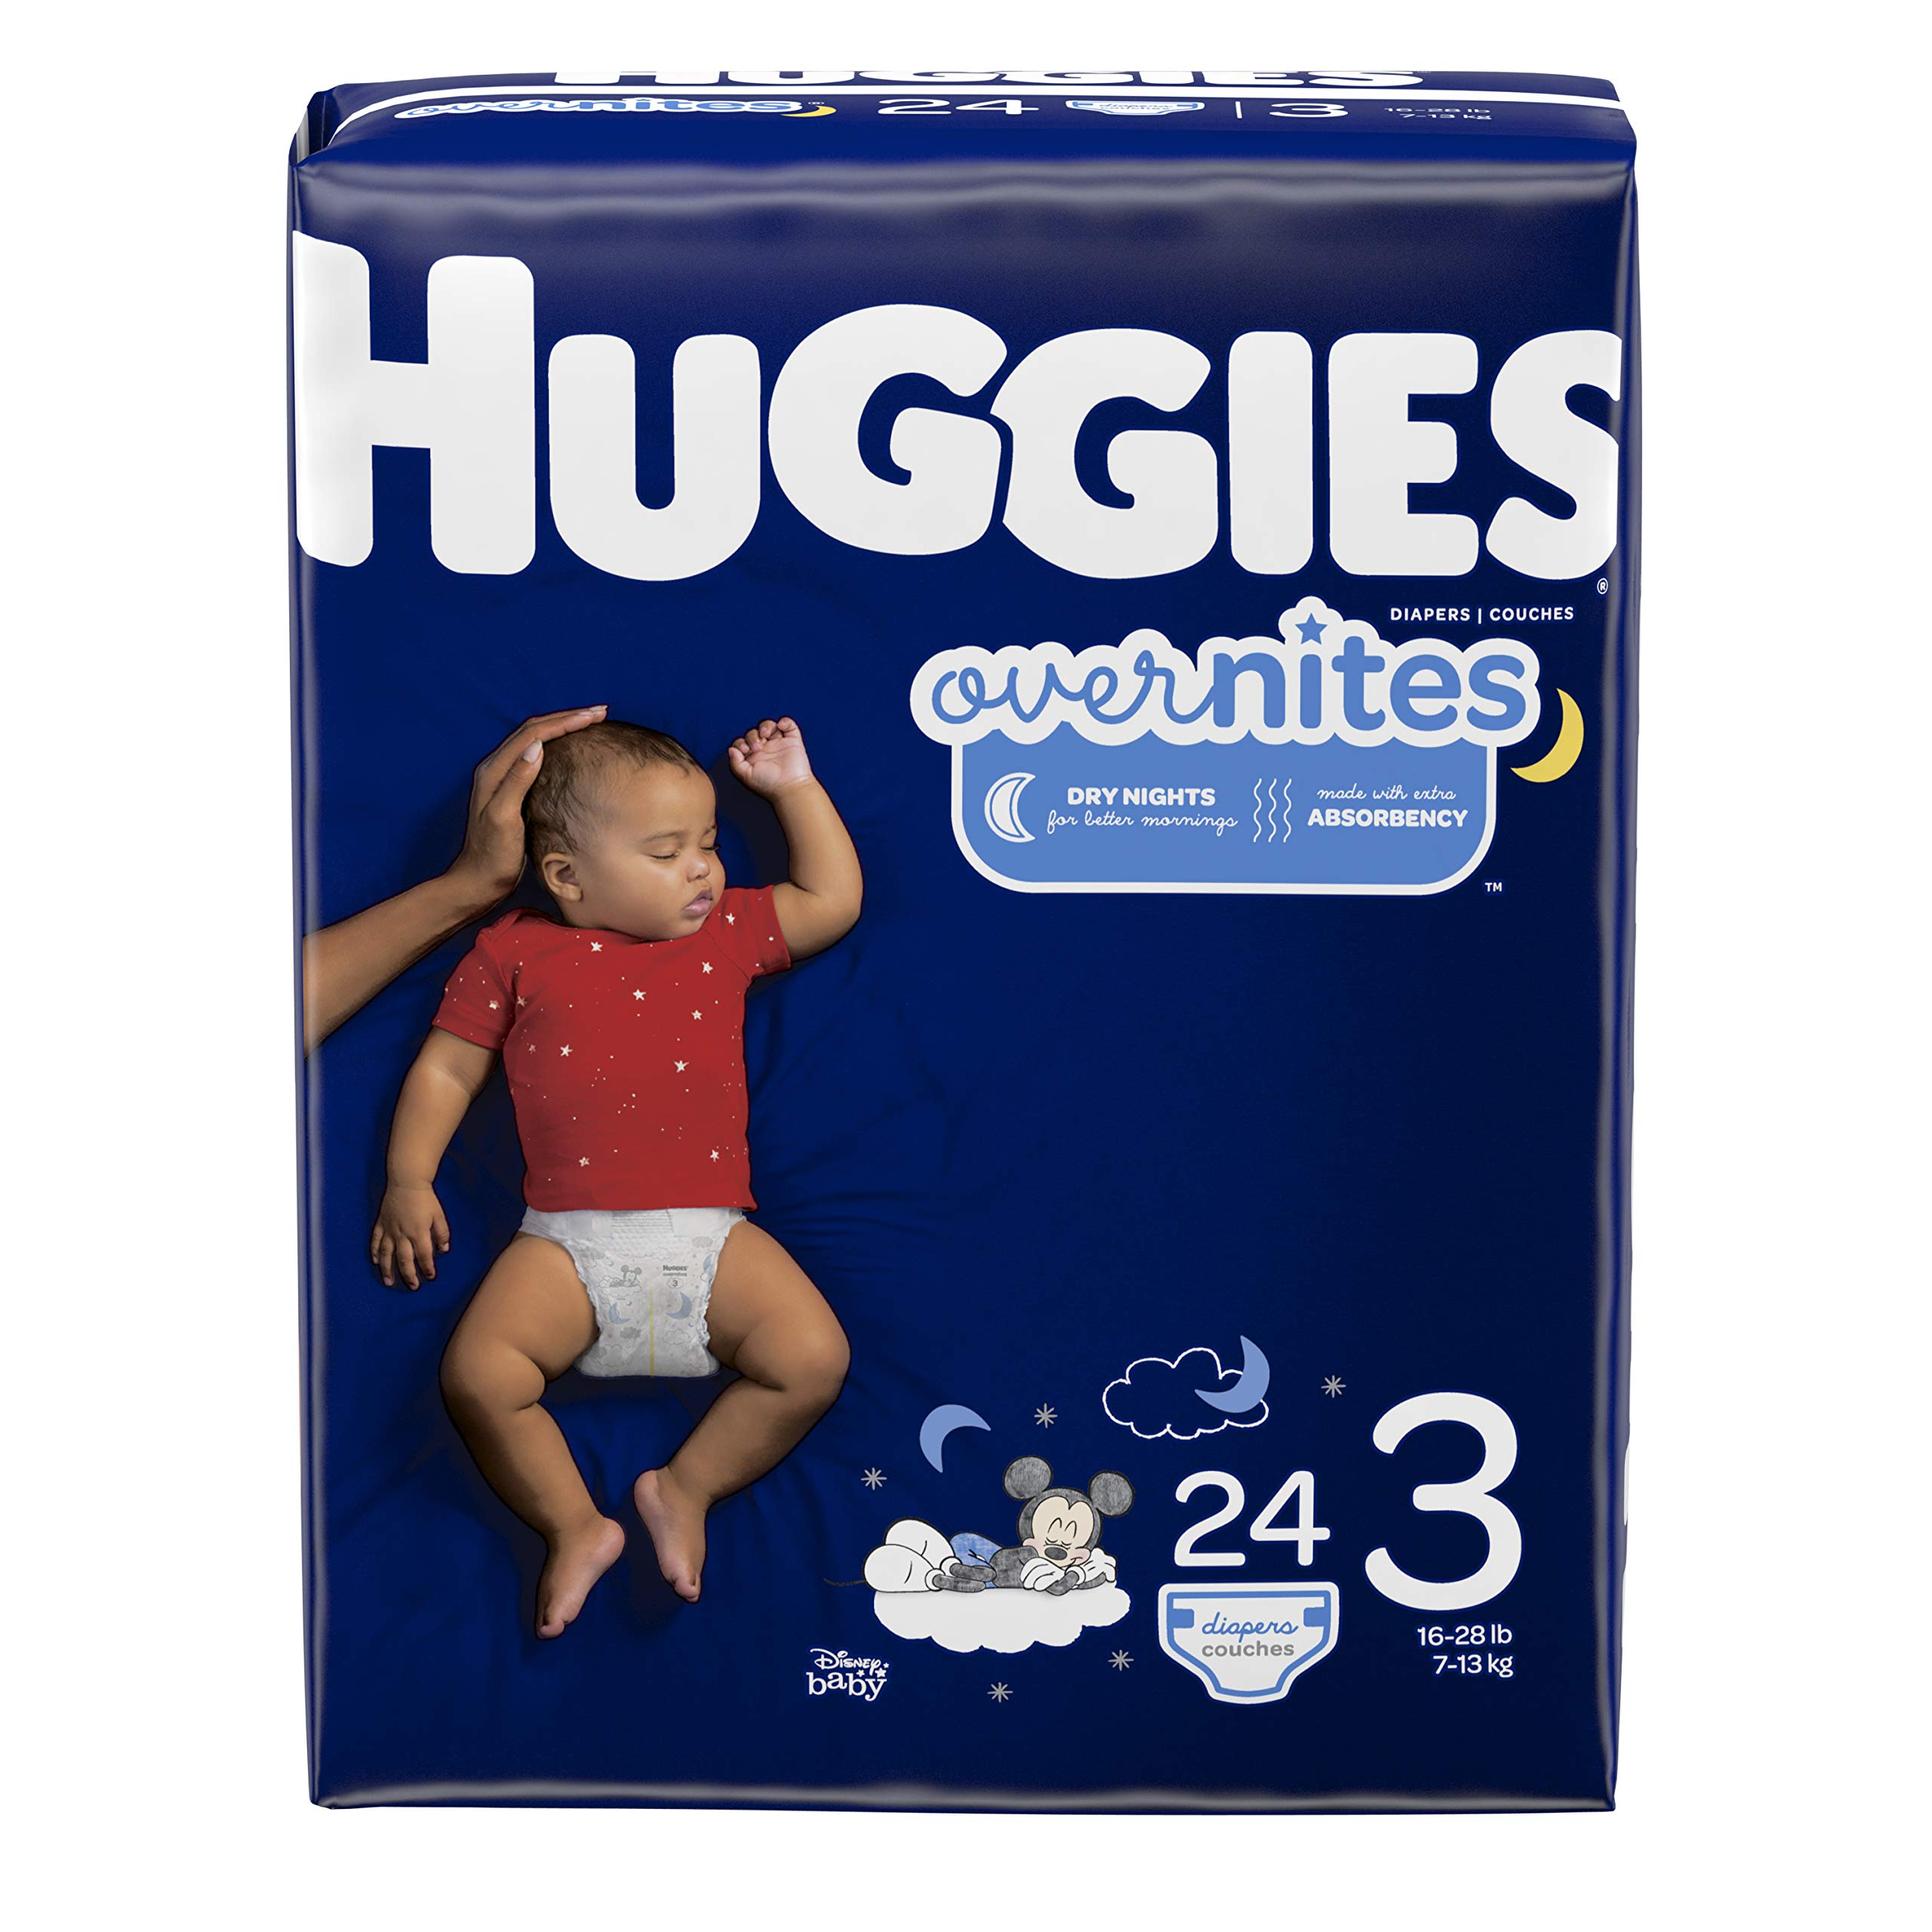 HUGGIES OverNites Diapers, Size 3, 24 ct., Overnight Diapers (Packaging May Vary) by HUGGIES